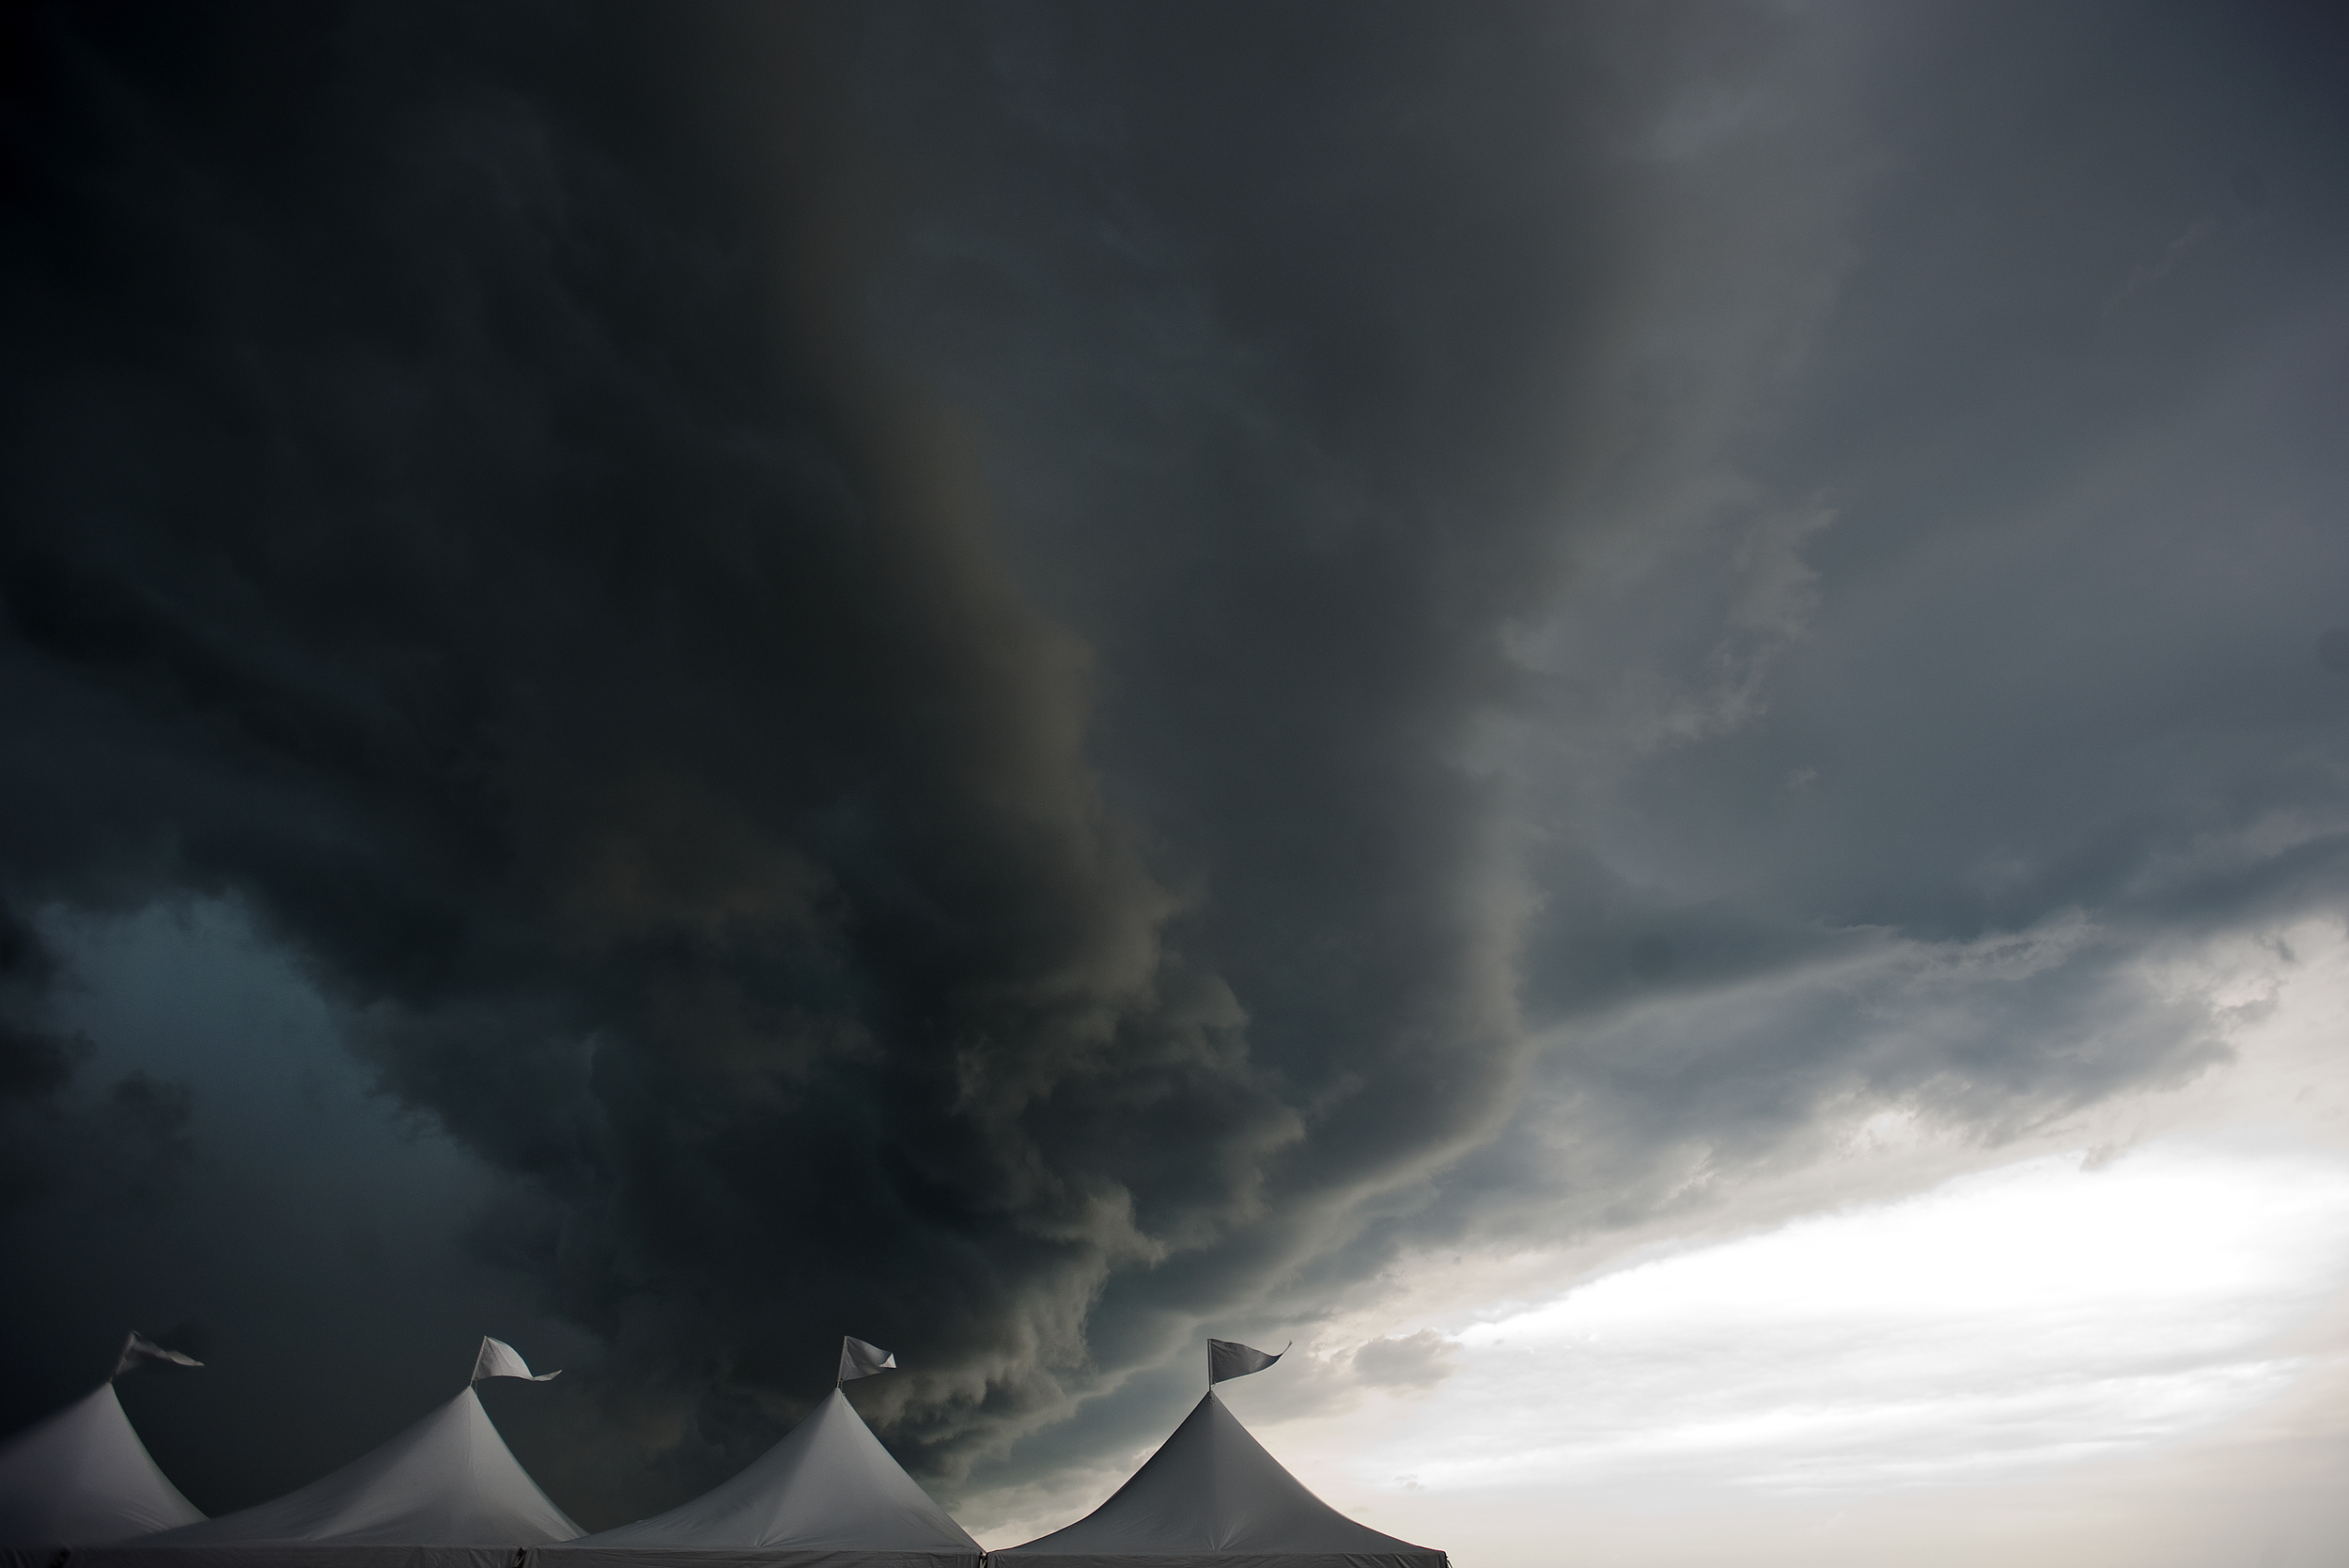 A storm moves in after the first day of the Westmoreland County Air Show at the Arnold Palmer Regional Airport near Latrobe on Saturday, June 20, 2015. The expected storms held off for the entire air show.